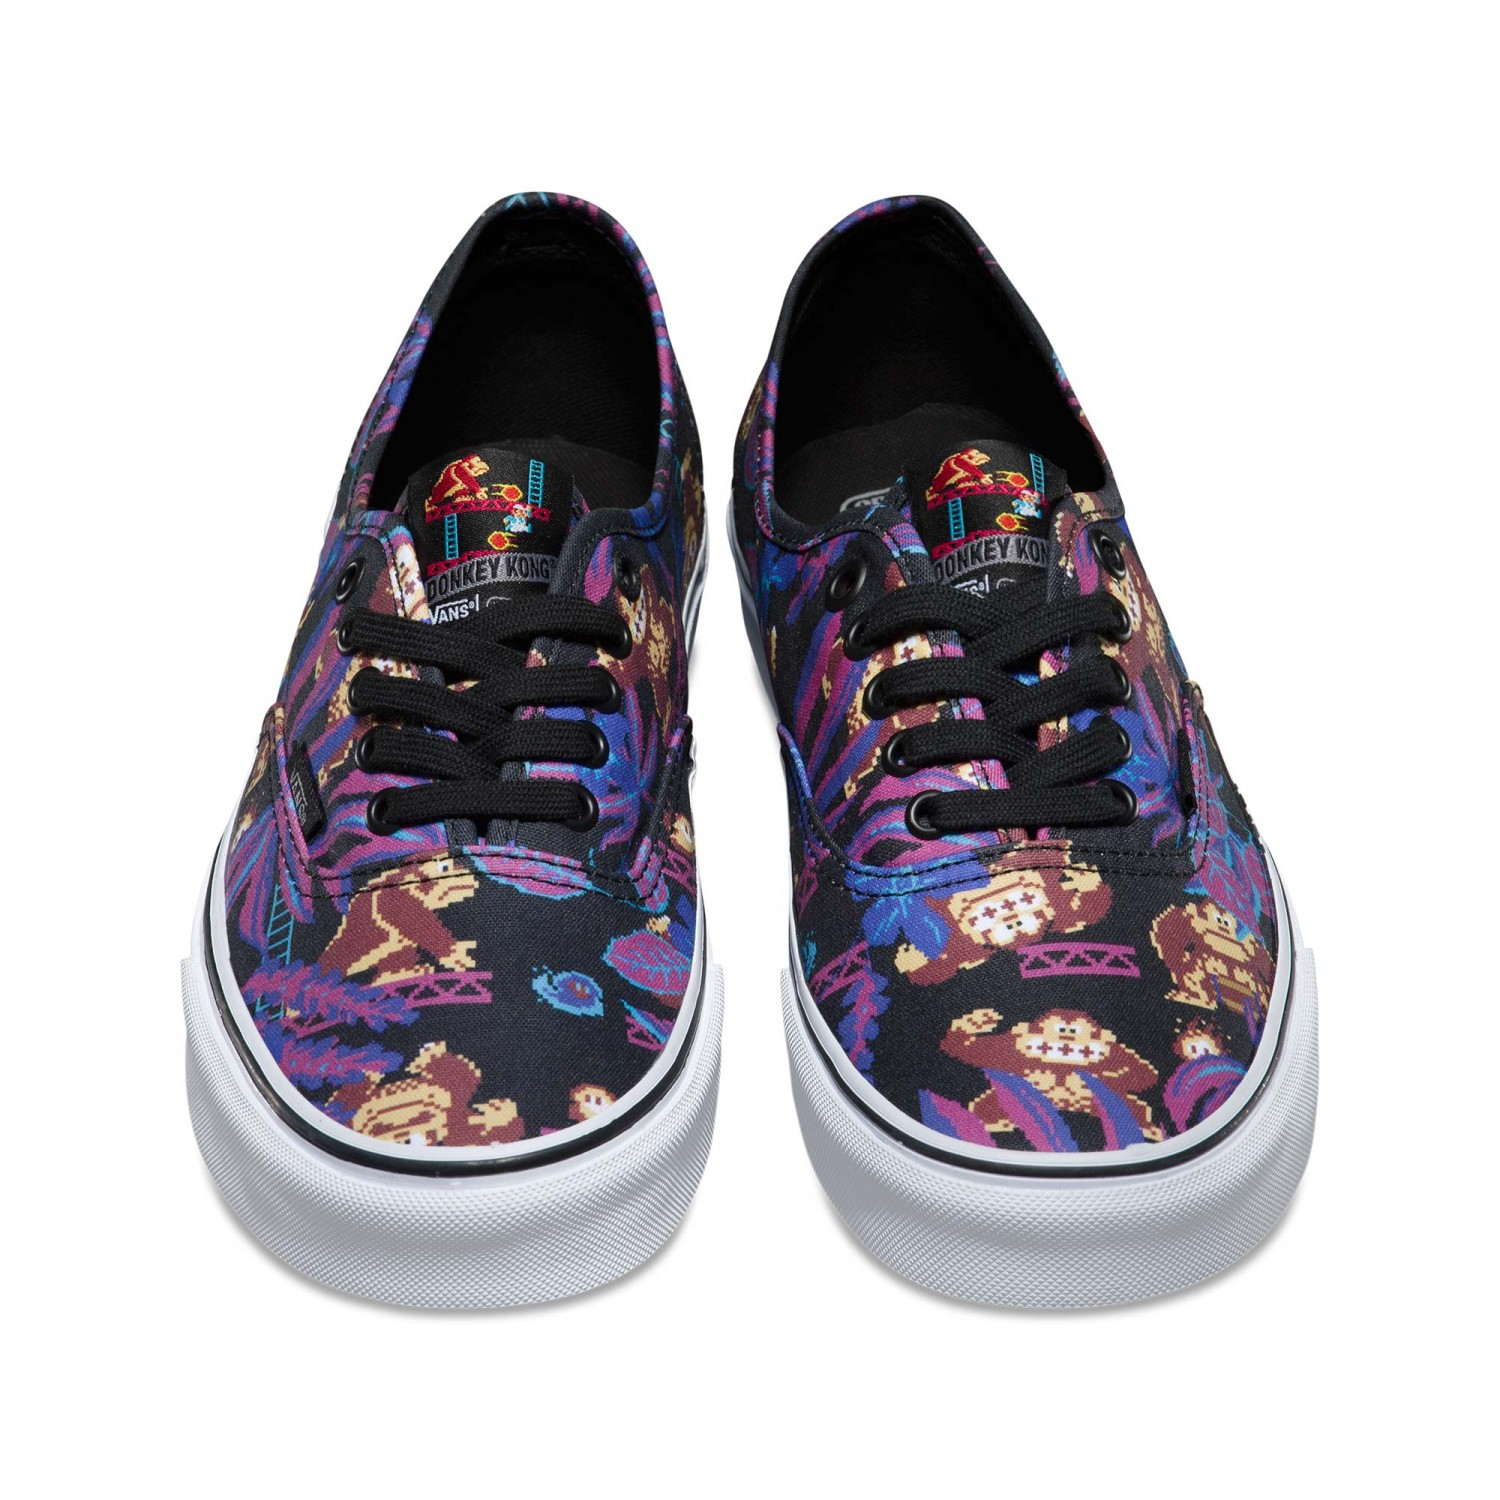 Nintendo x Vans Authentic Donkey Kong